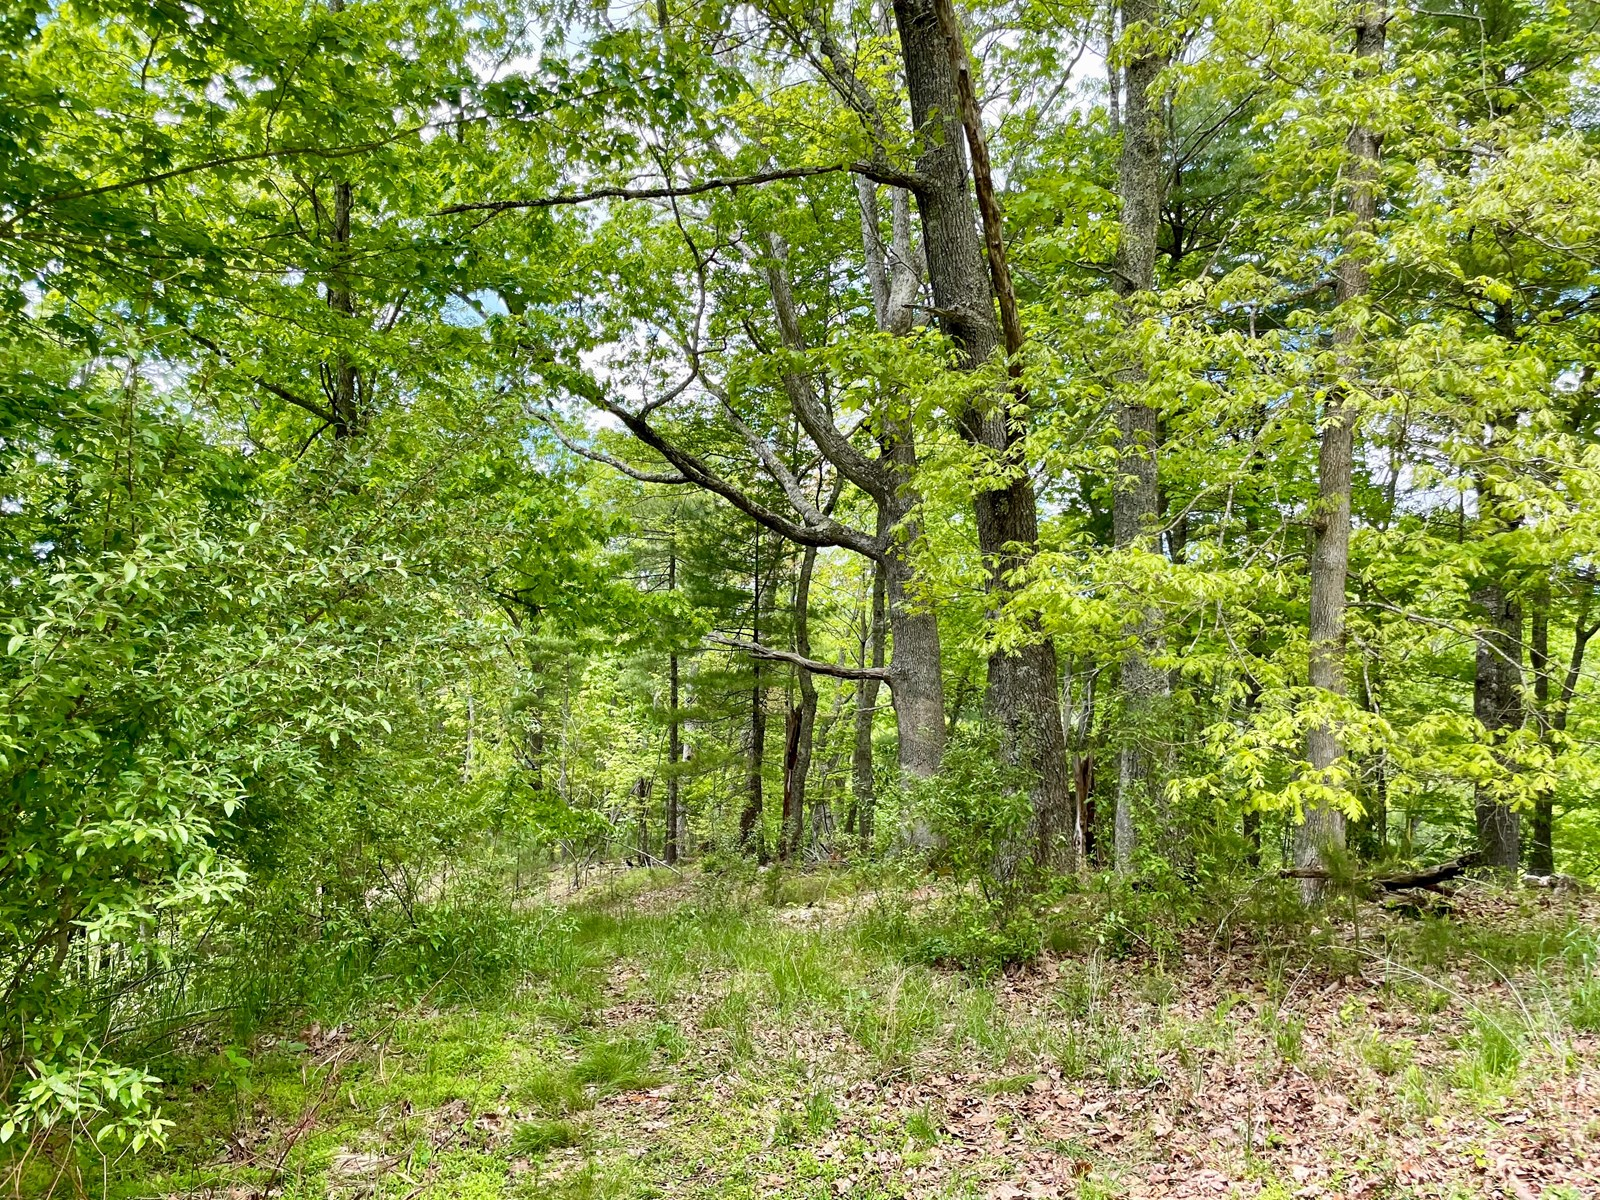 Wooded Property for Sale in Floyd County VA